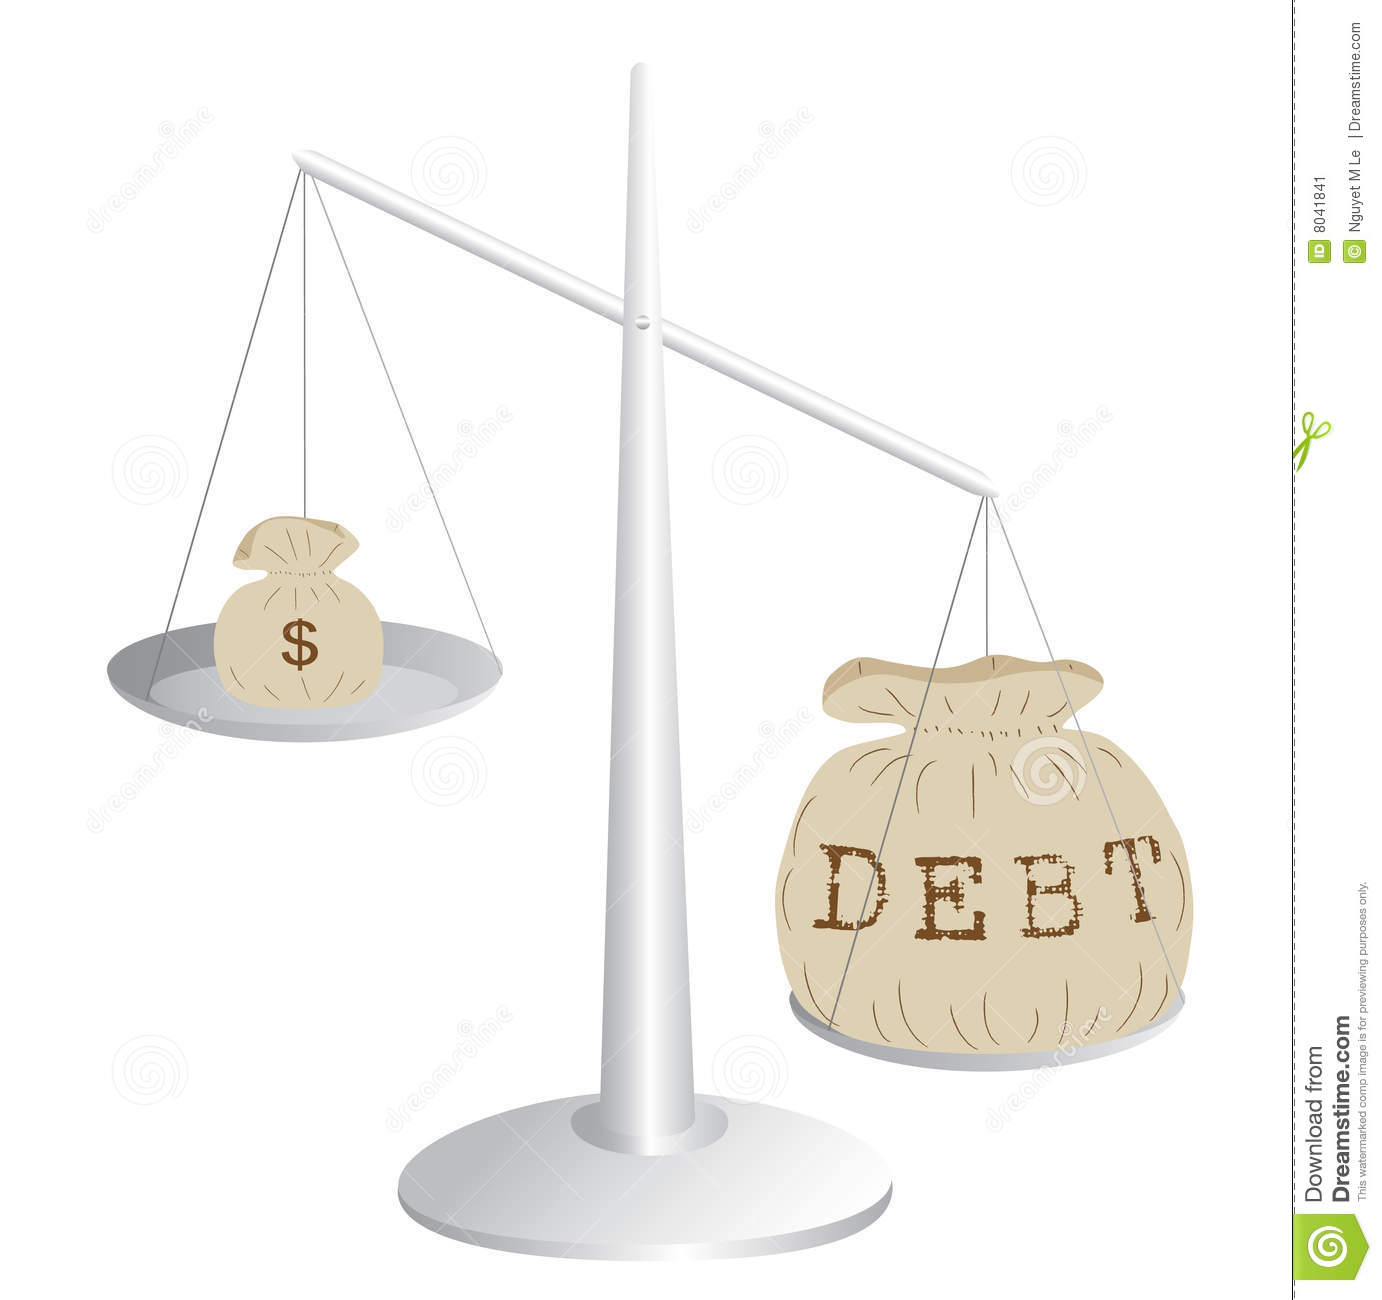 budget deficit stock vector illustration of commodity balance scale clipart balance scale clip art previews 123rf